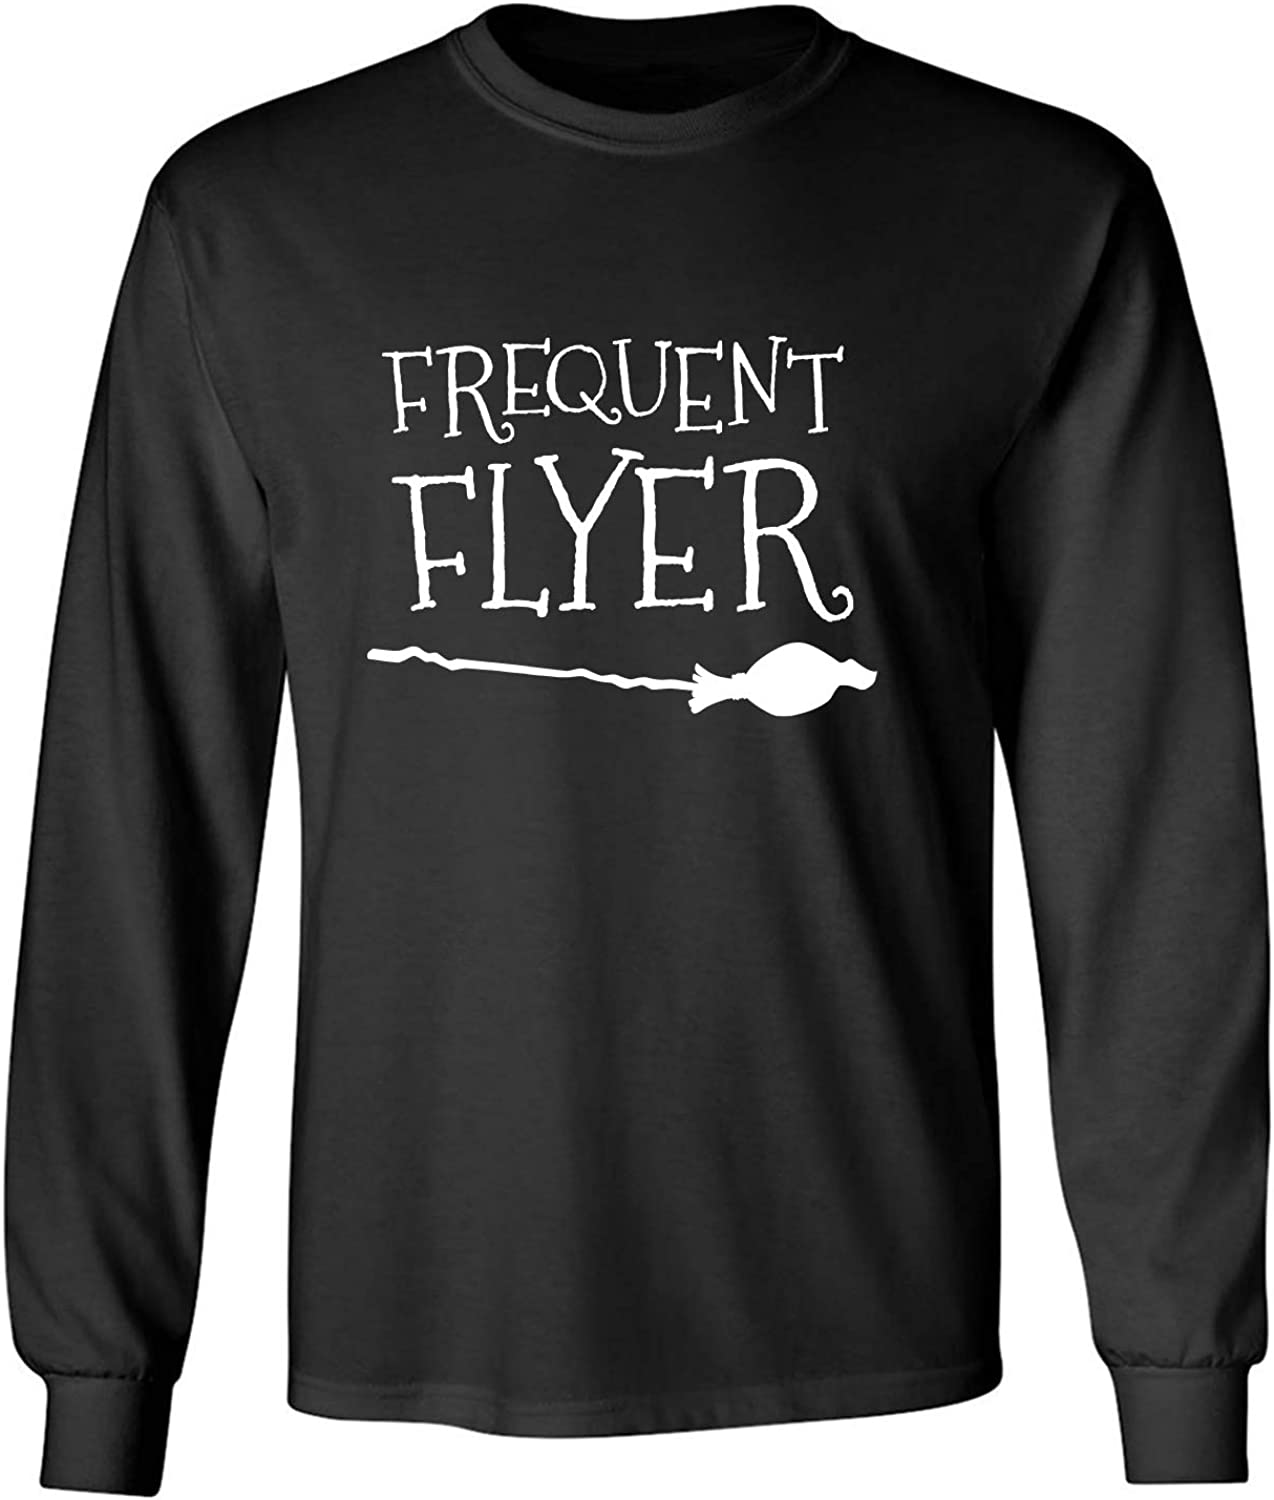 Frequent Flyer Adult Long Sleeve T-Shirt in Black - XXXX-Large